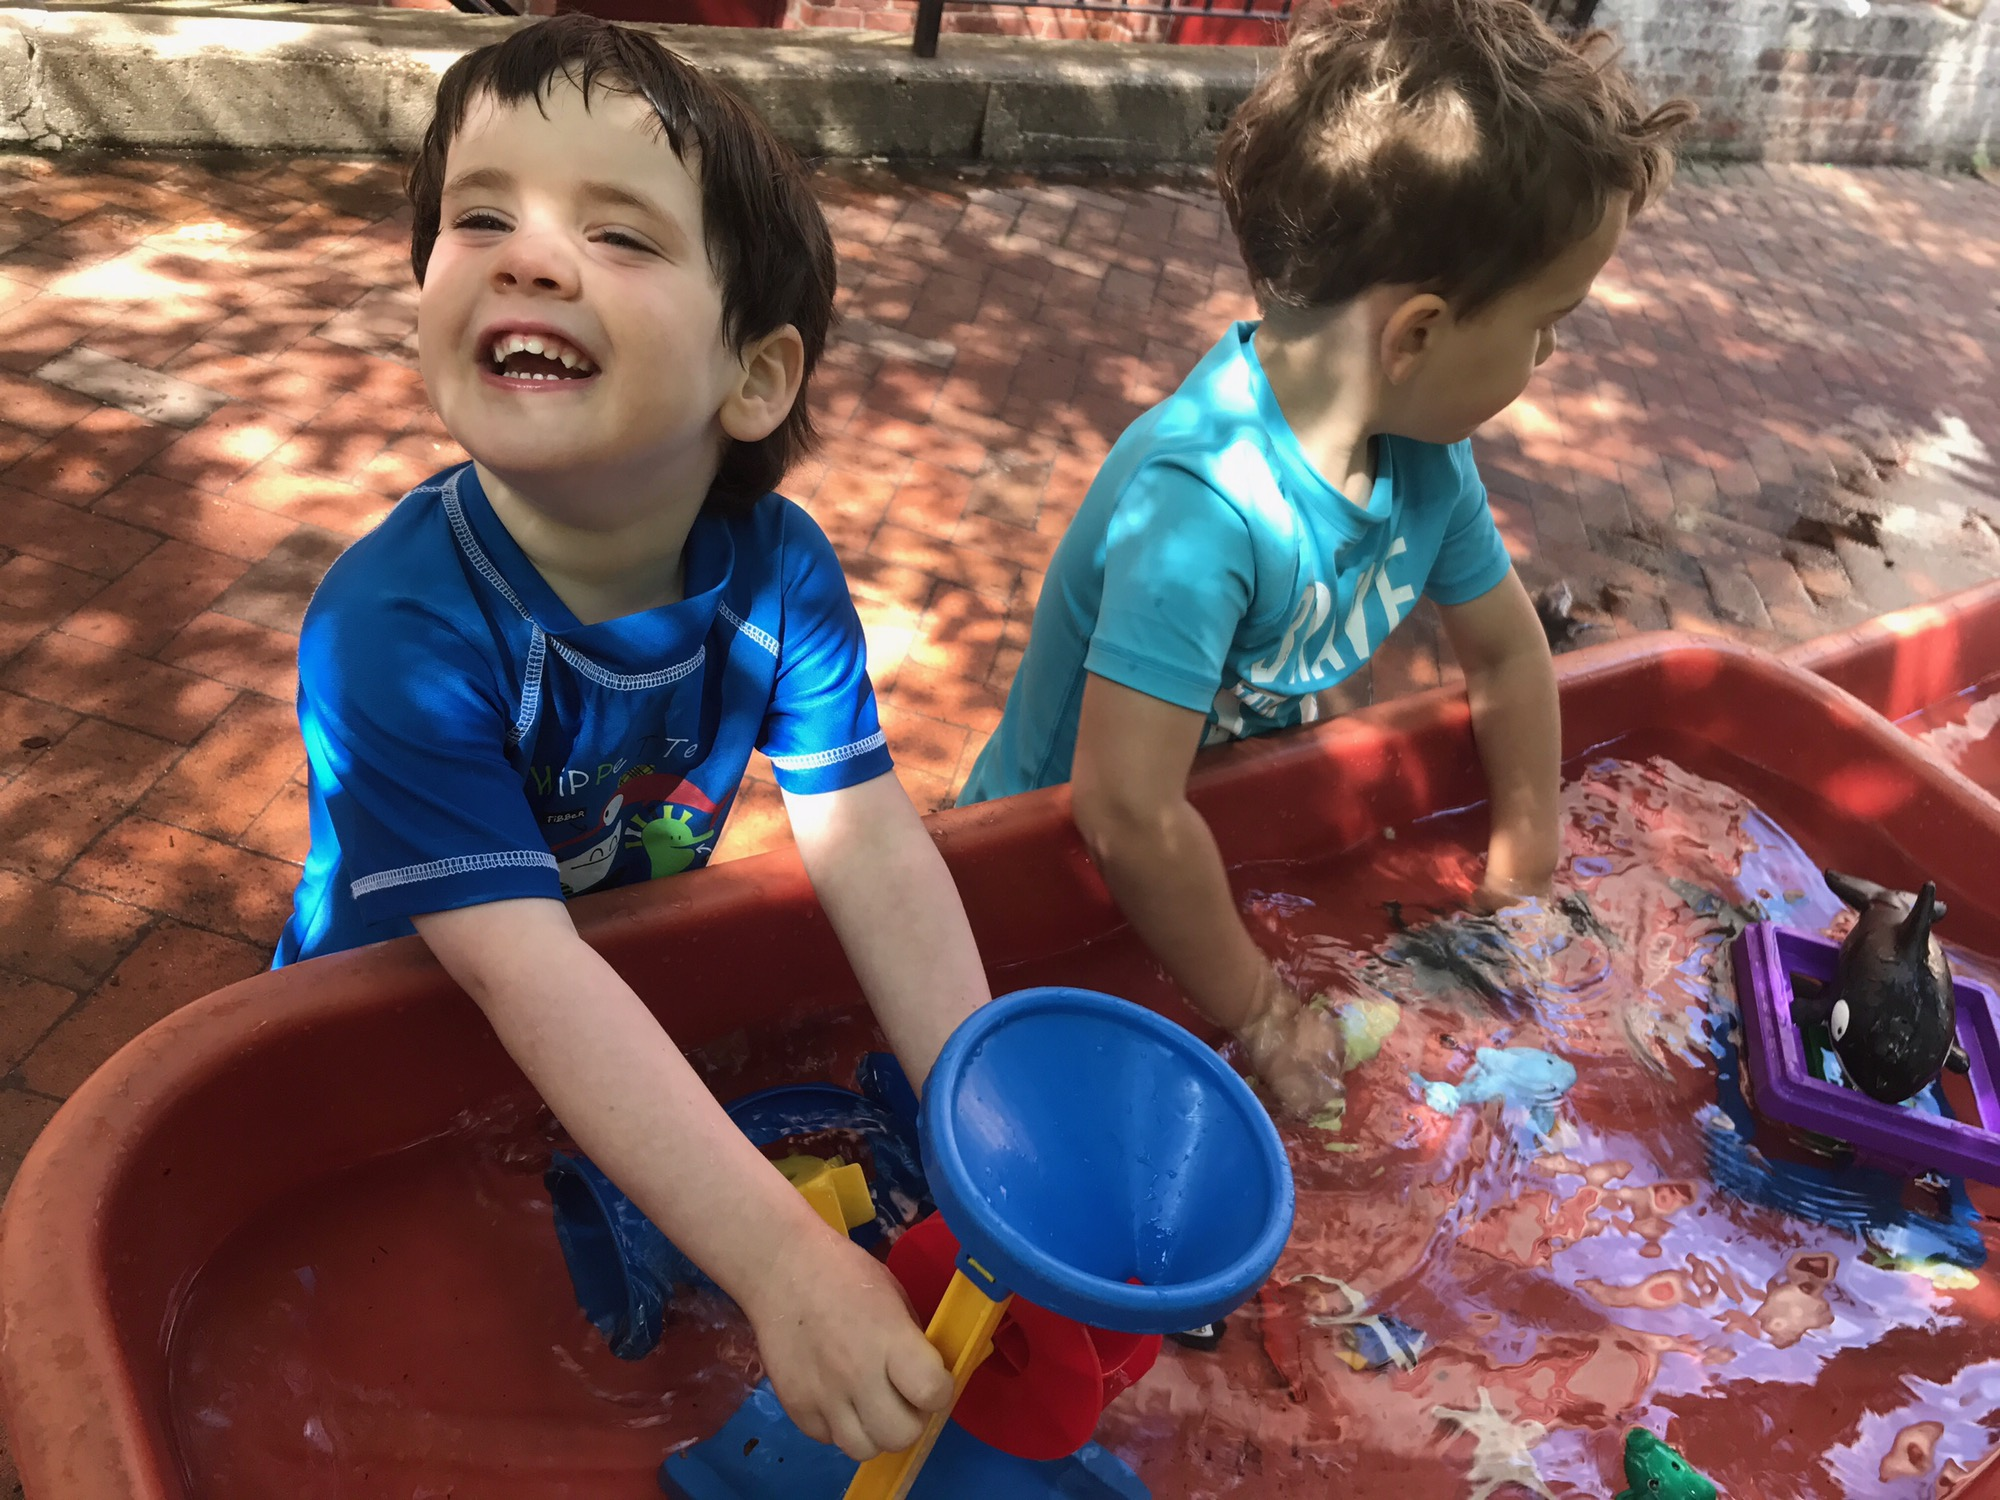 - Join us for a glimpse of the fun ways we keep campers happy, active and engaged each and every day.